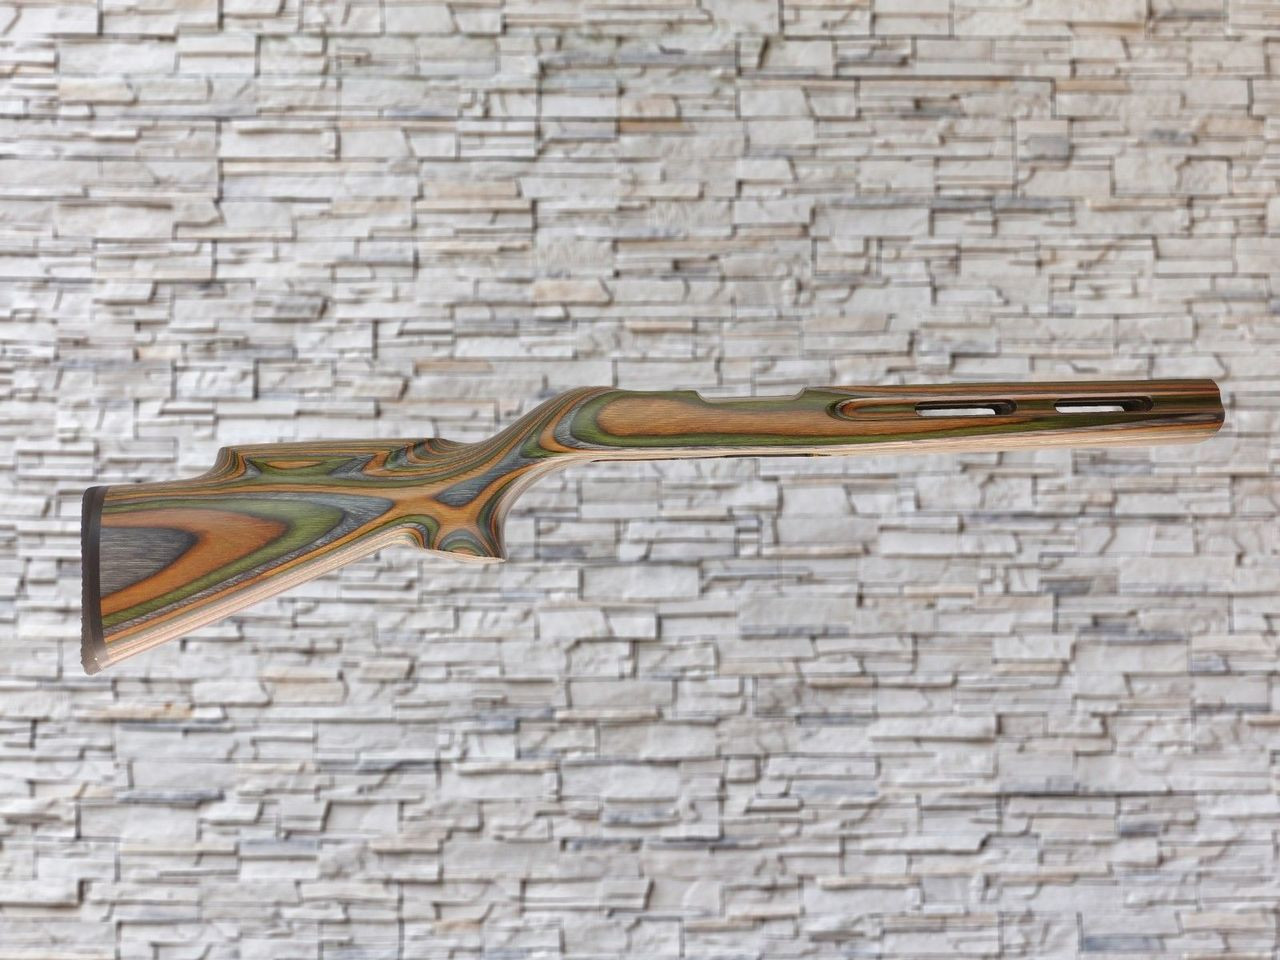 Revolution Vented Trailblazer Bull Channel Wood Stock Camo for Ruger 10/22, T/CR22